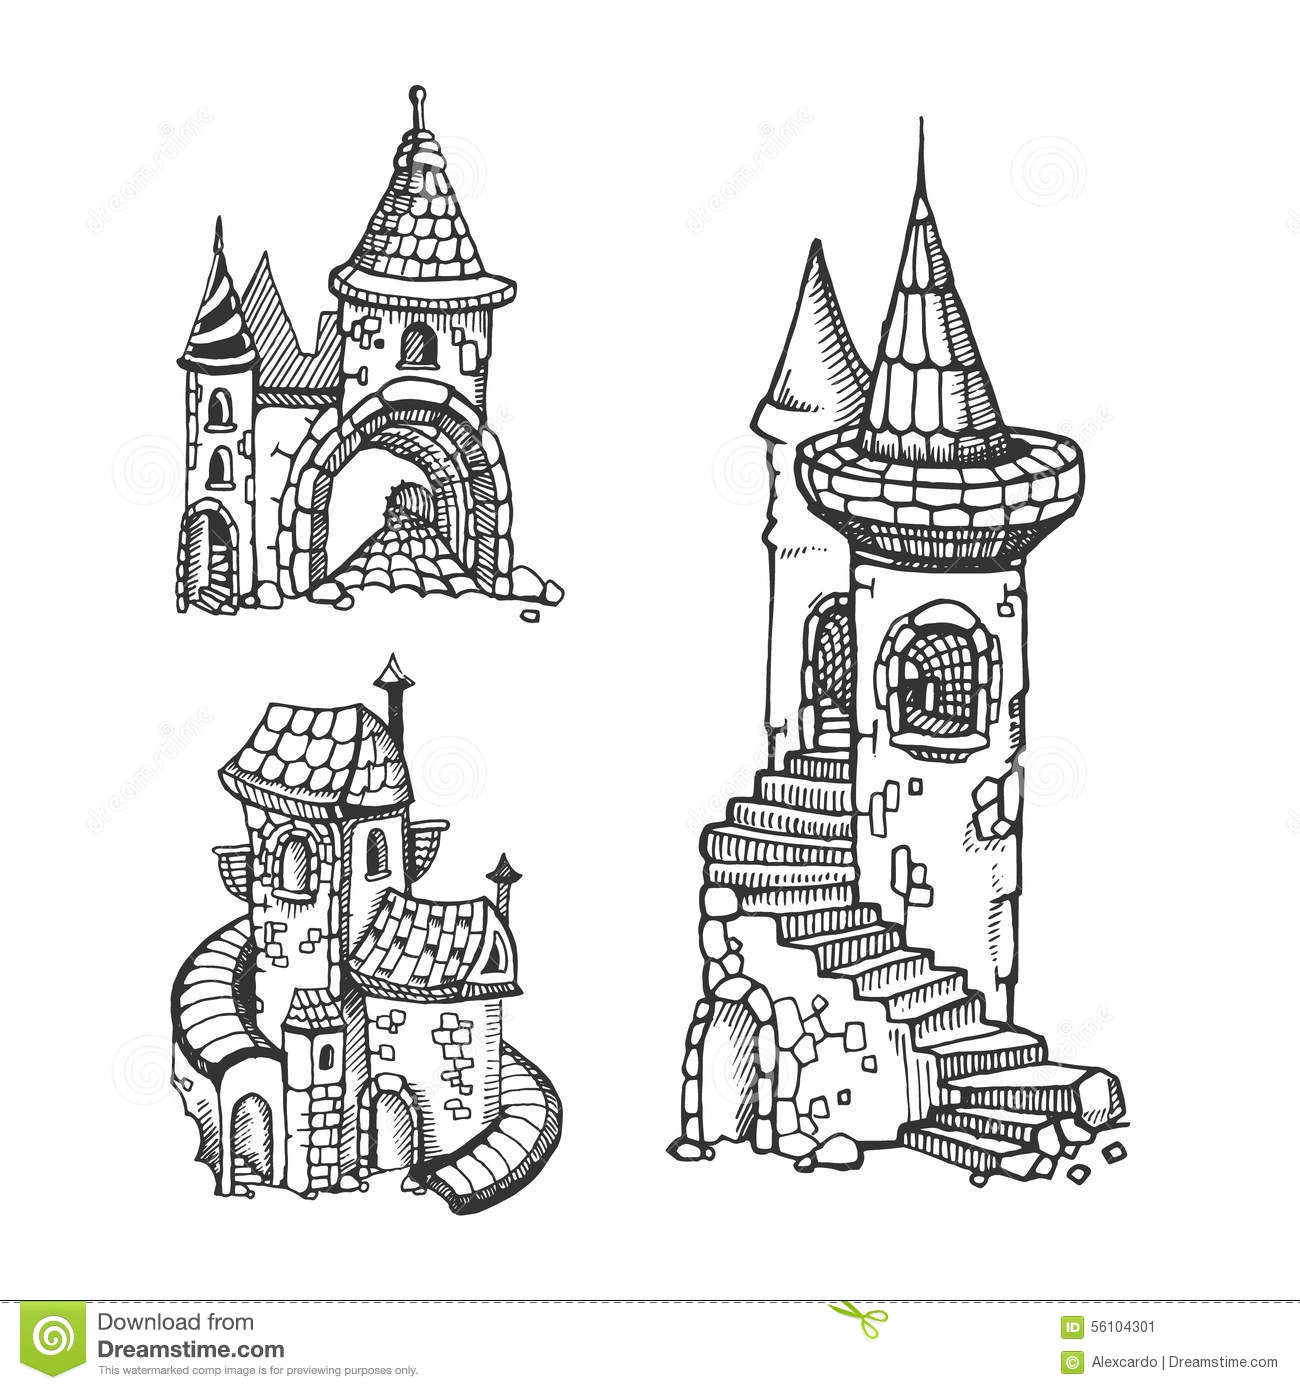 Medieval castles stock vector. Illustration of